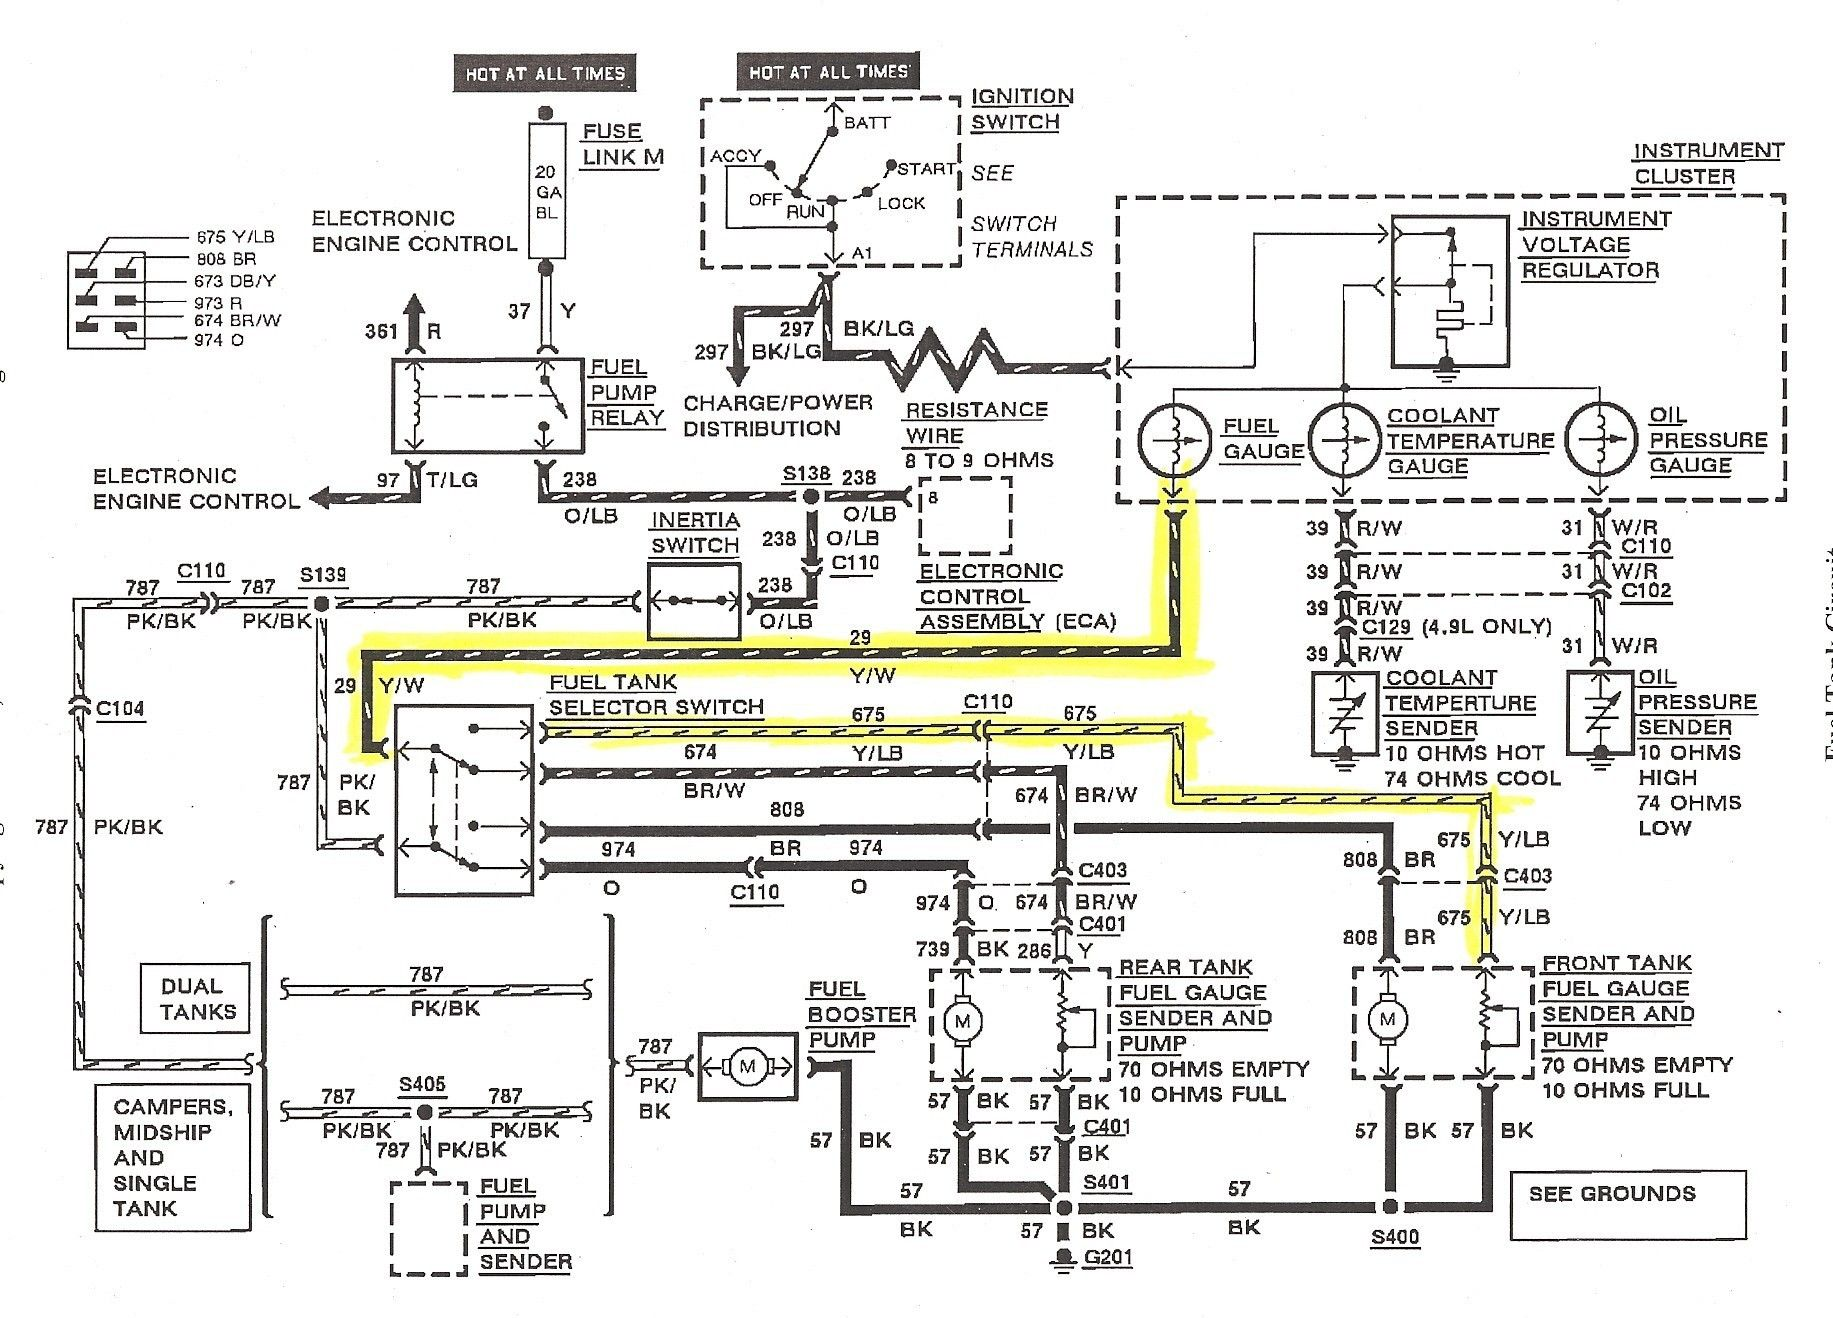 Unique Wiring Diagram 2005 Dodge Ram 1500 Diagram Diagramsample Diagramtemplate Wiringdiagram Diagramchart Worksheet Workshe Gauges House Wiring Diagram